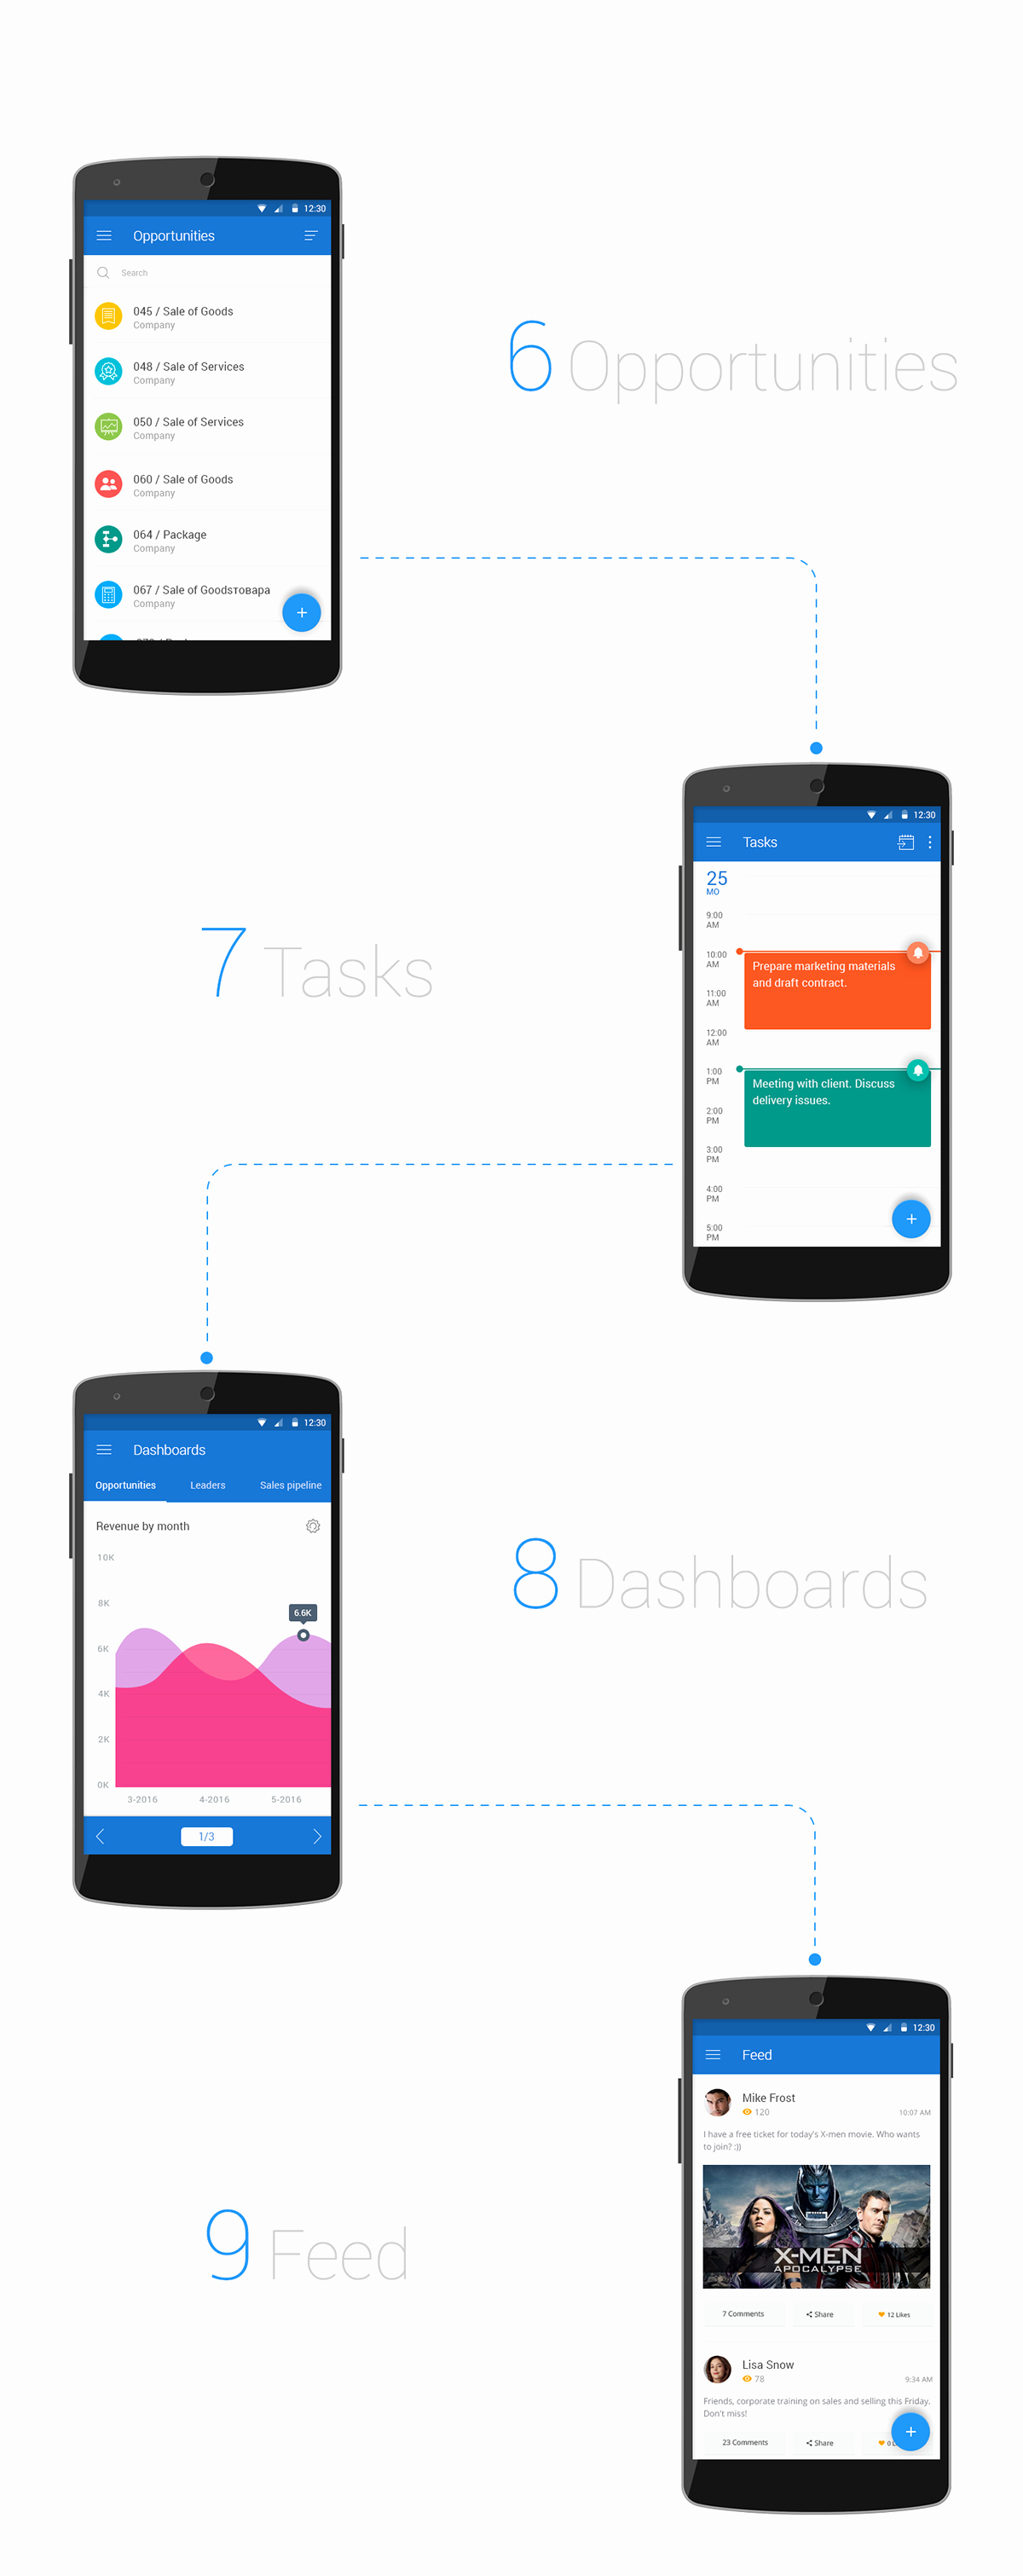 Free Crm Mobile App Psd Template — Free Design Resources